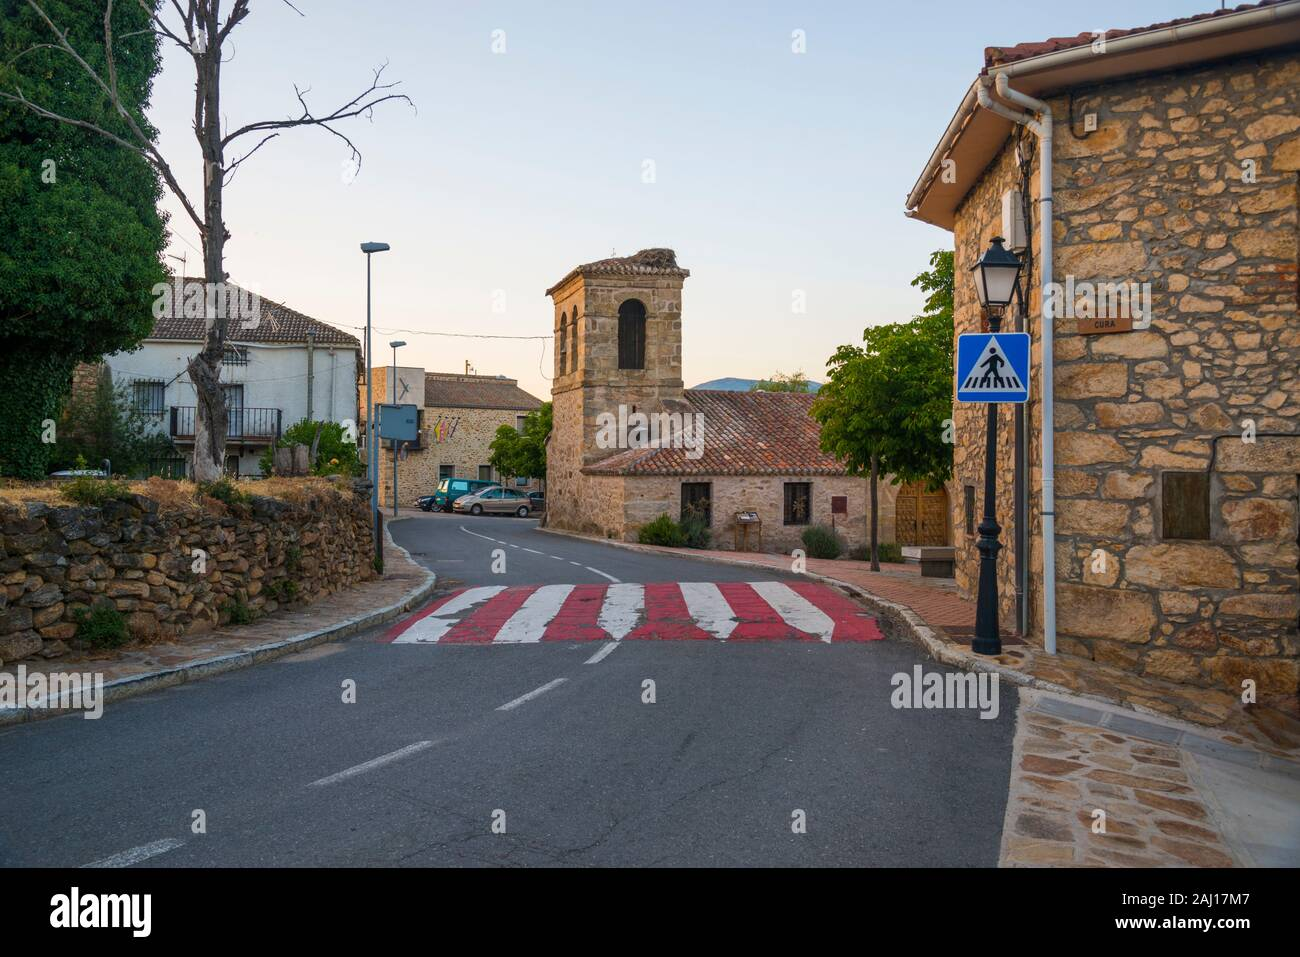 Street. Piñuecar, Madrid province, Spain. Stock Photo